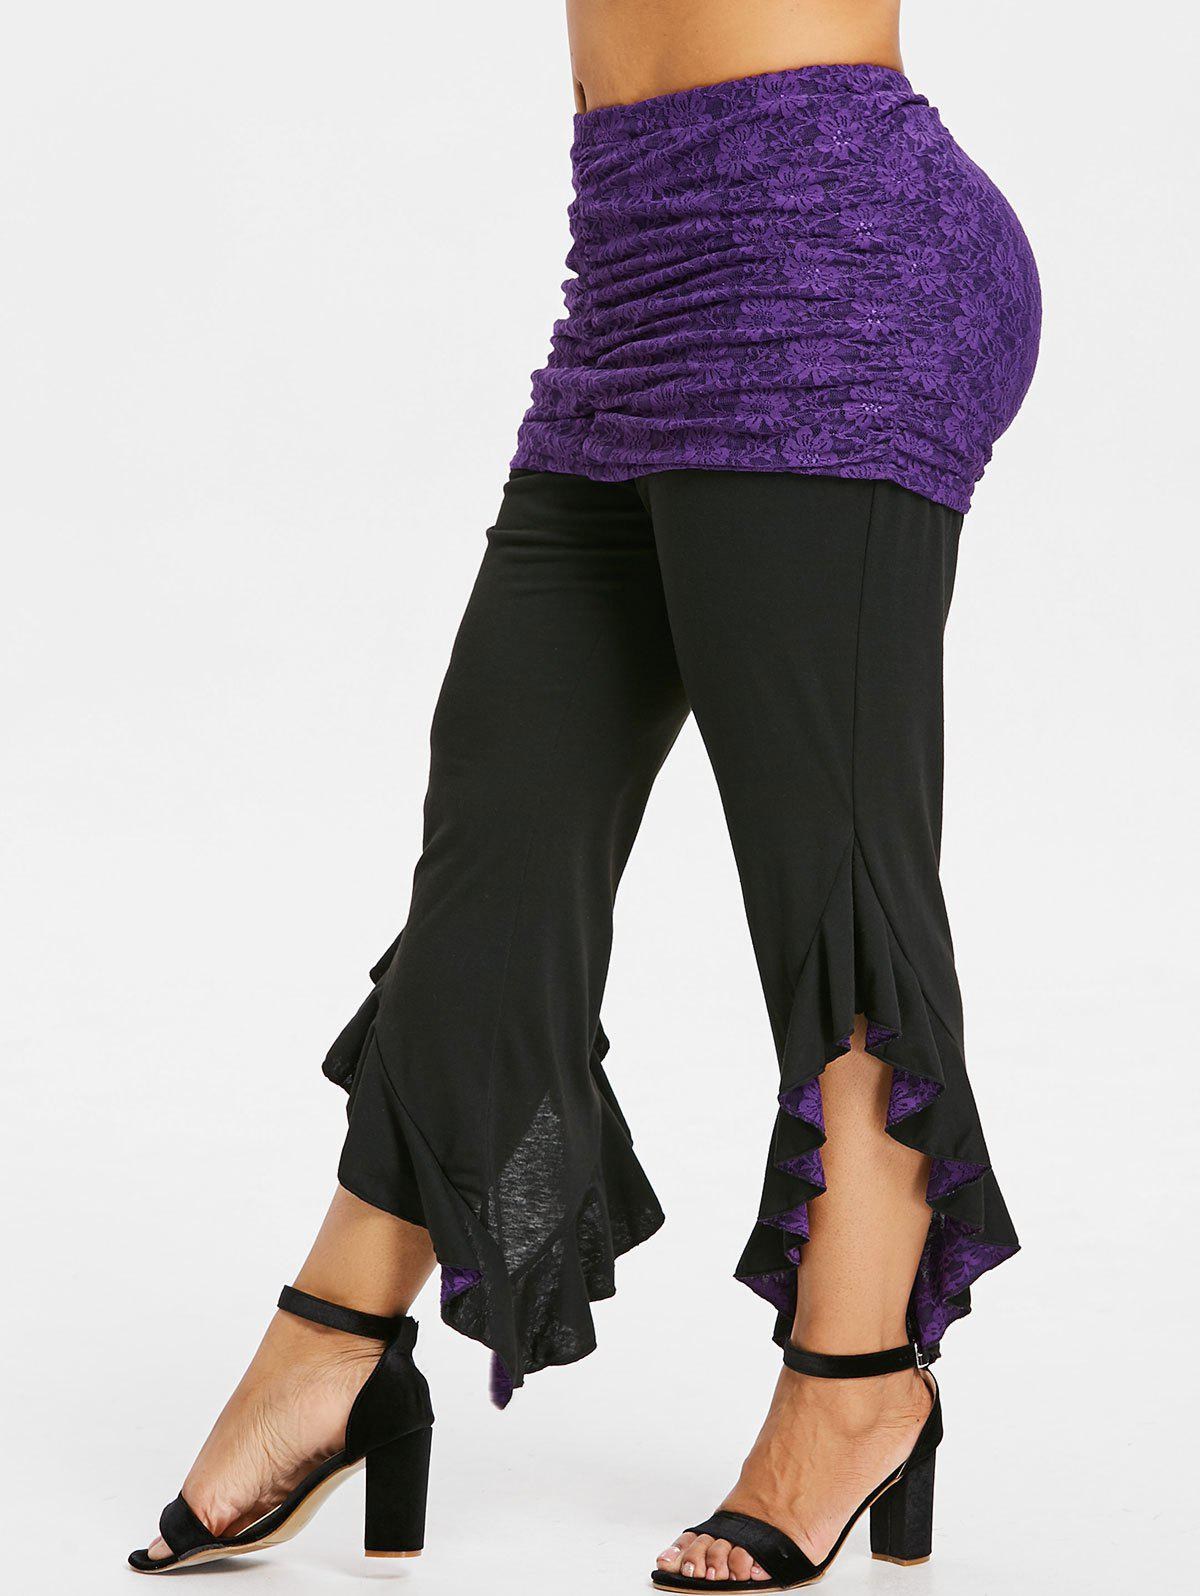 Asymmetric Plus Size Detachable Lace Skirt Leggings - PURPLE IRIS 4X